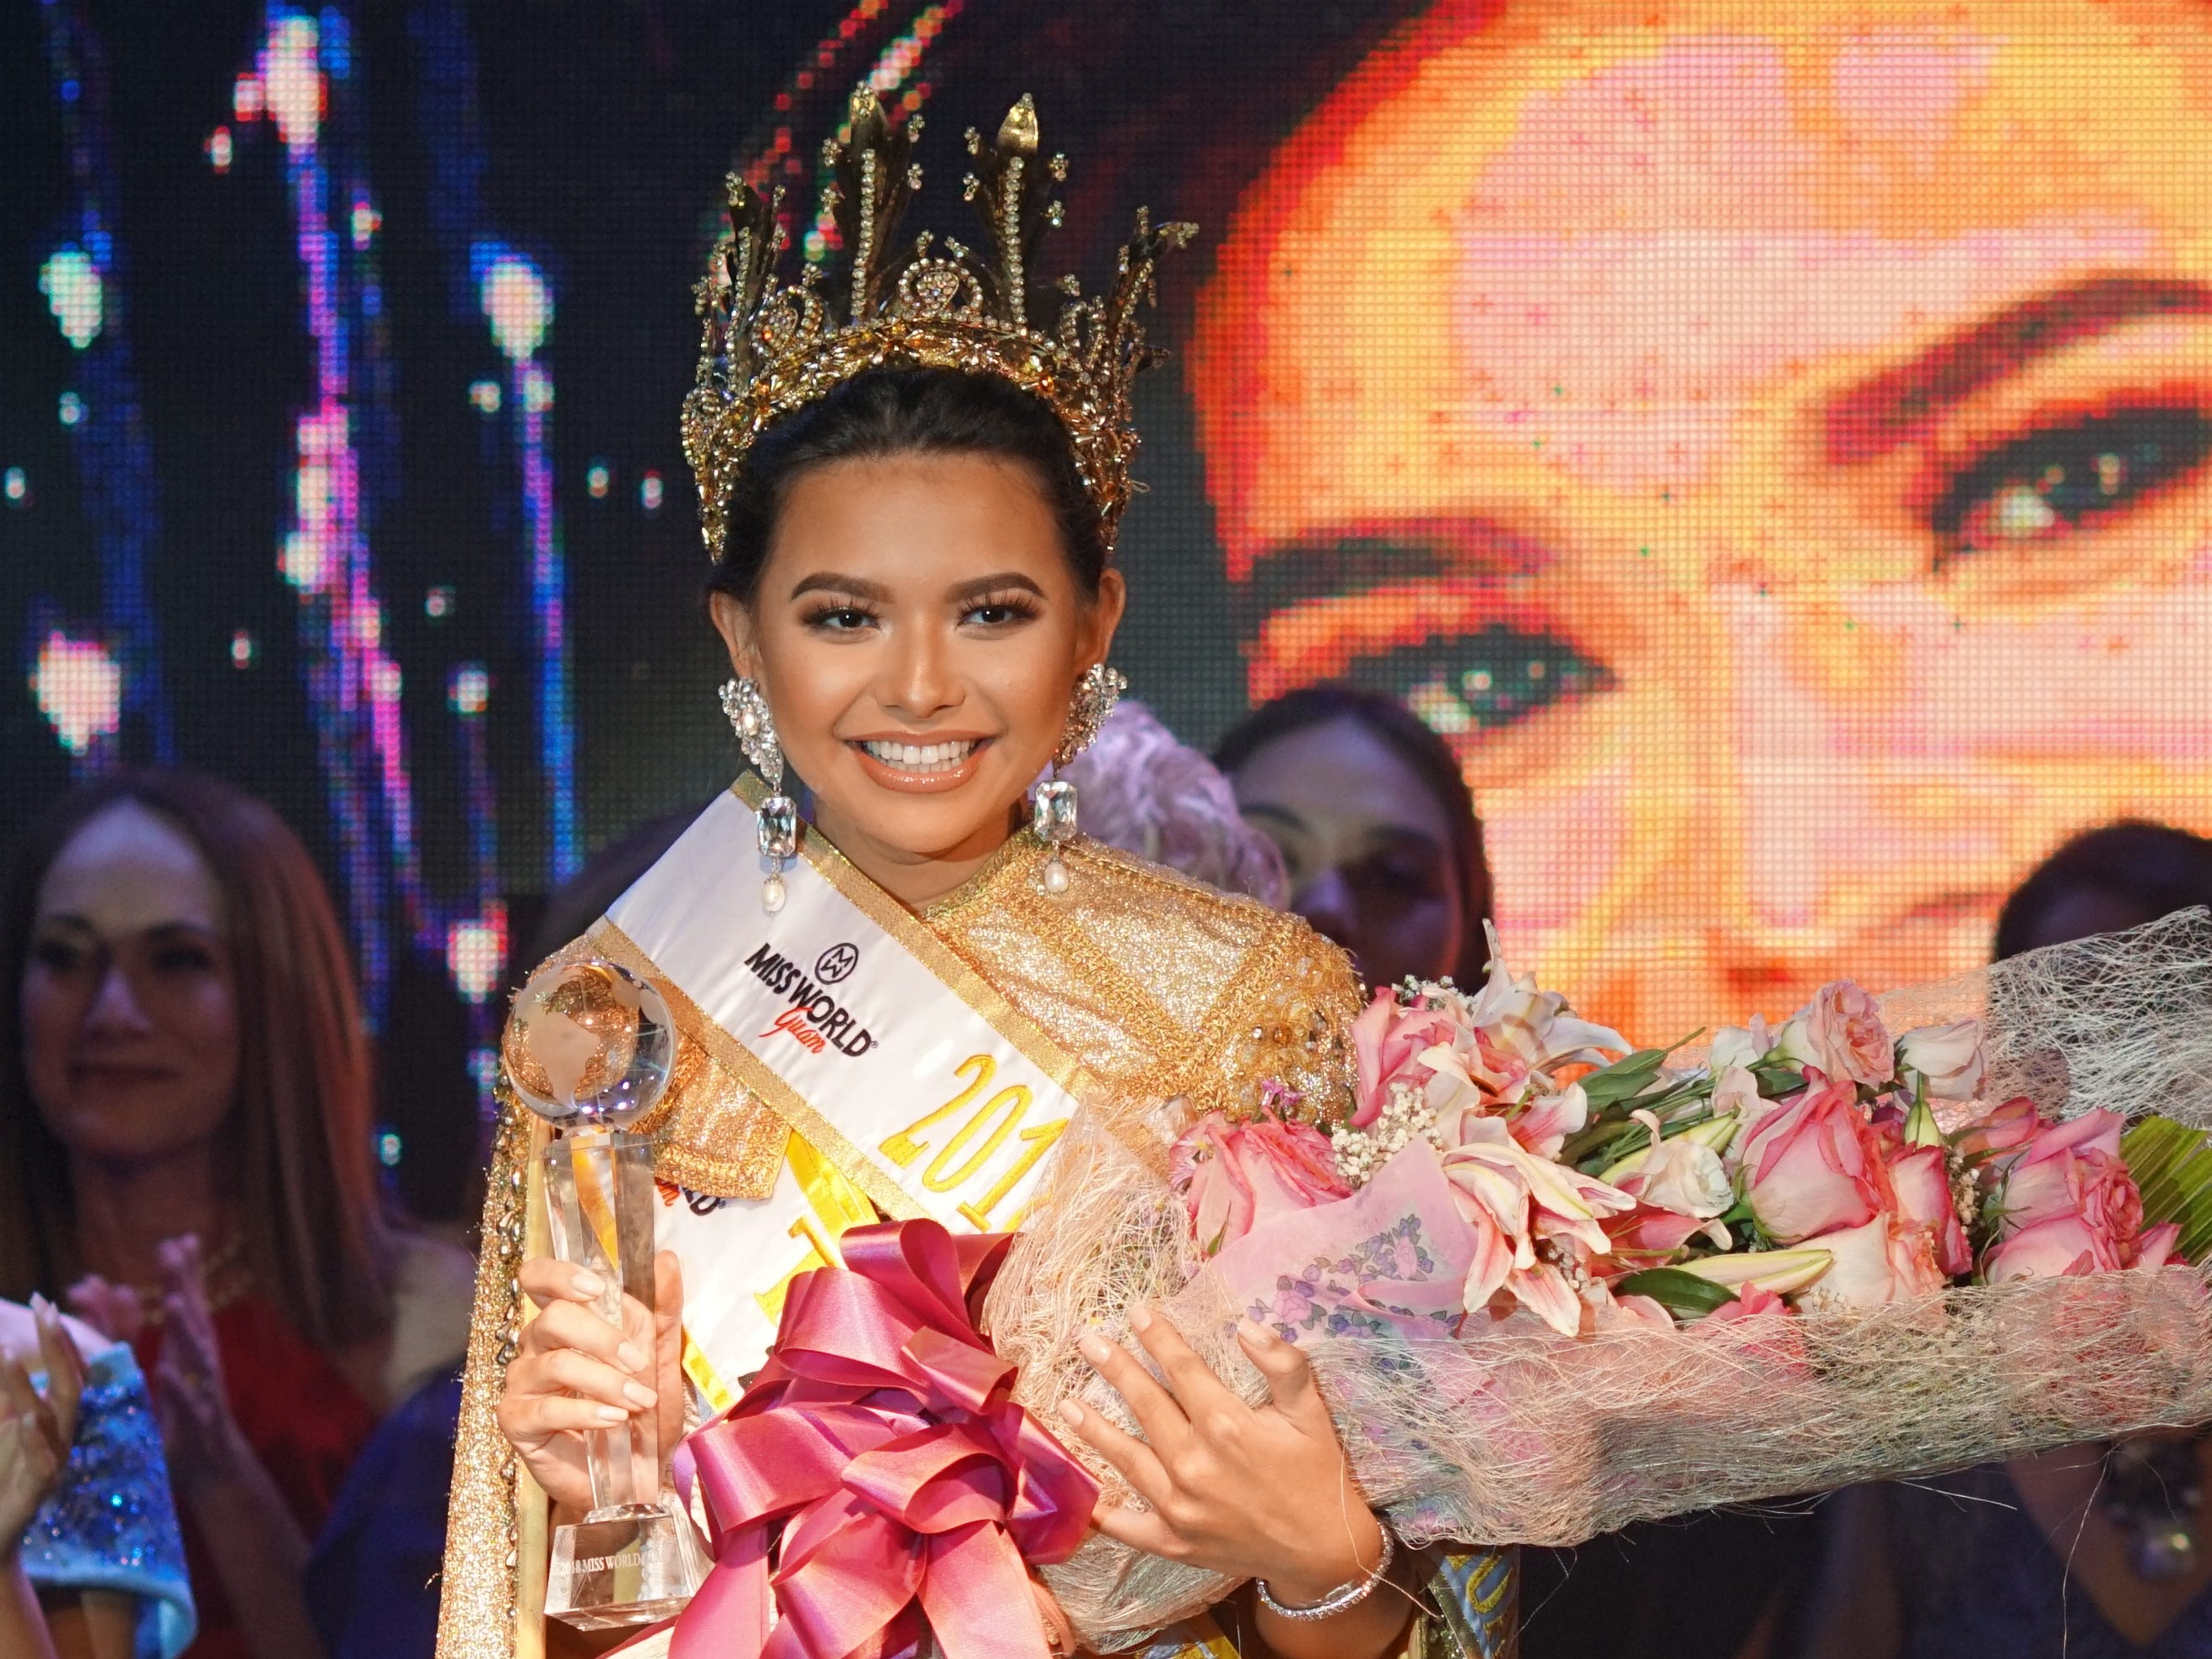 Gianna Camacho Sgambelluri, 18, of Barrigada, as 2018 Miss World Guam pageant winner.  The event was held at   Sheraton Laguna Guam Resort.